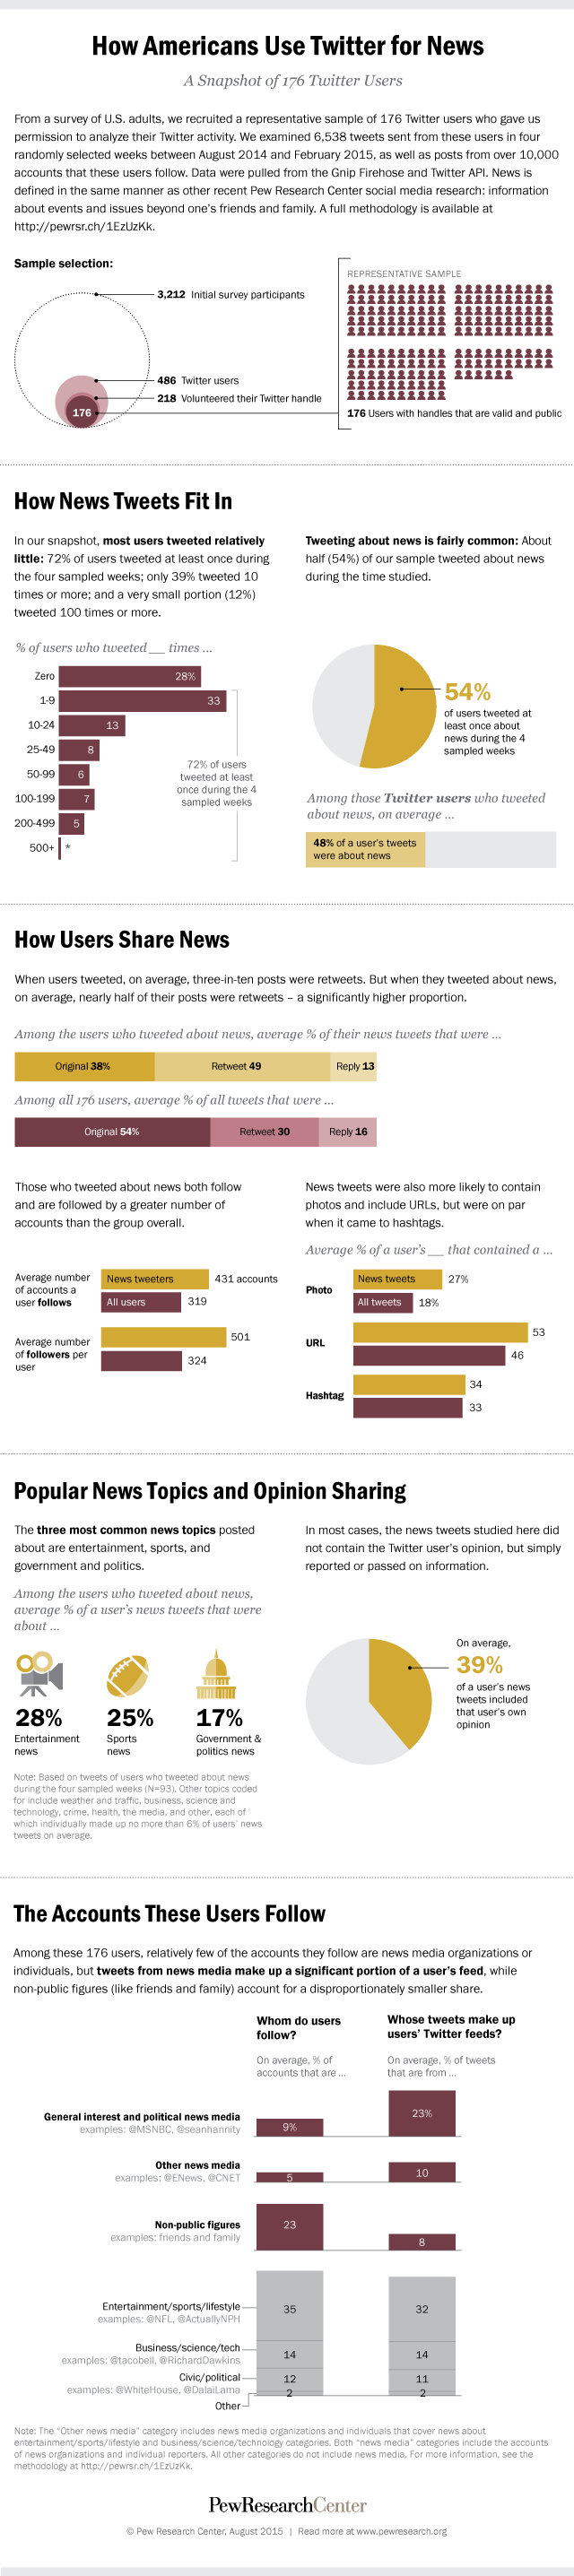 How Americans Use Twitter for News